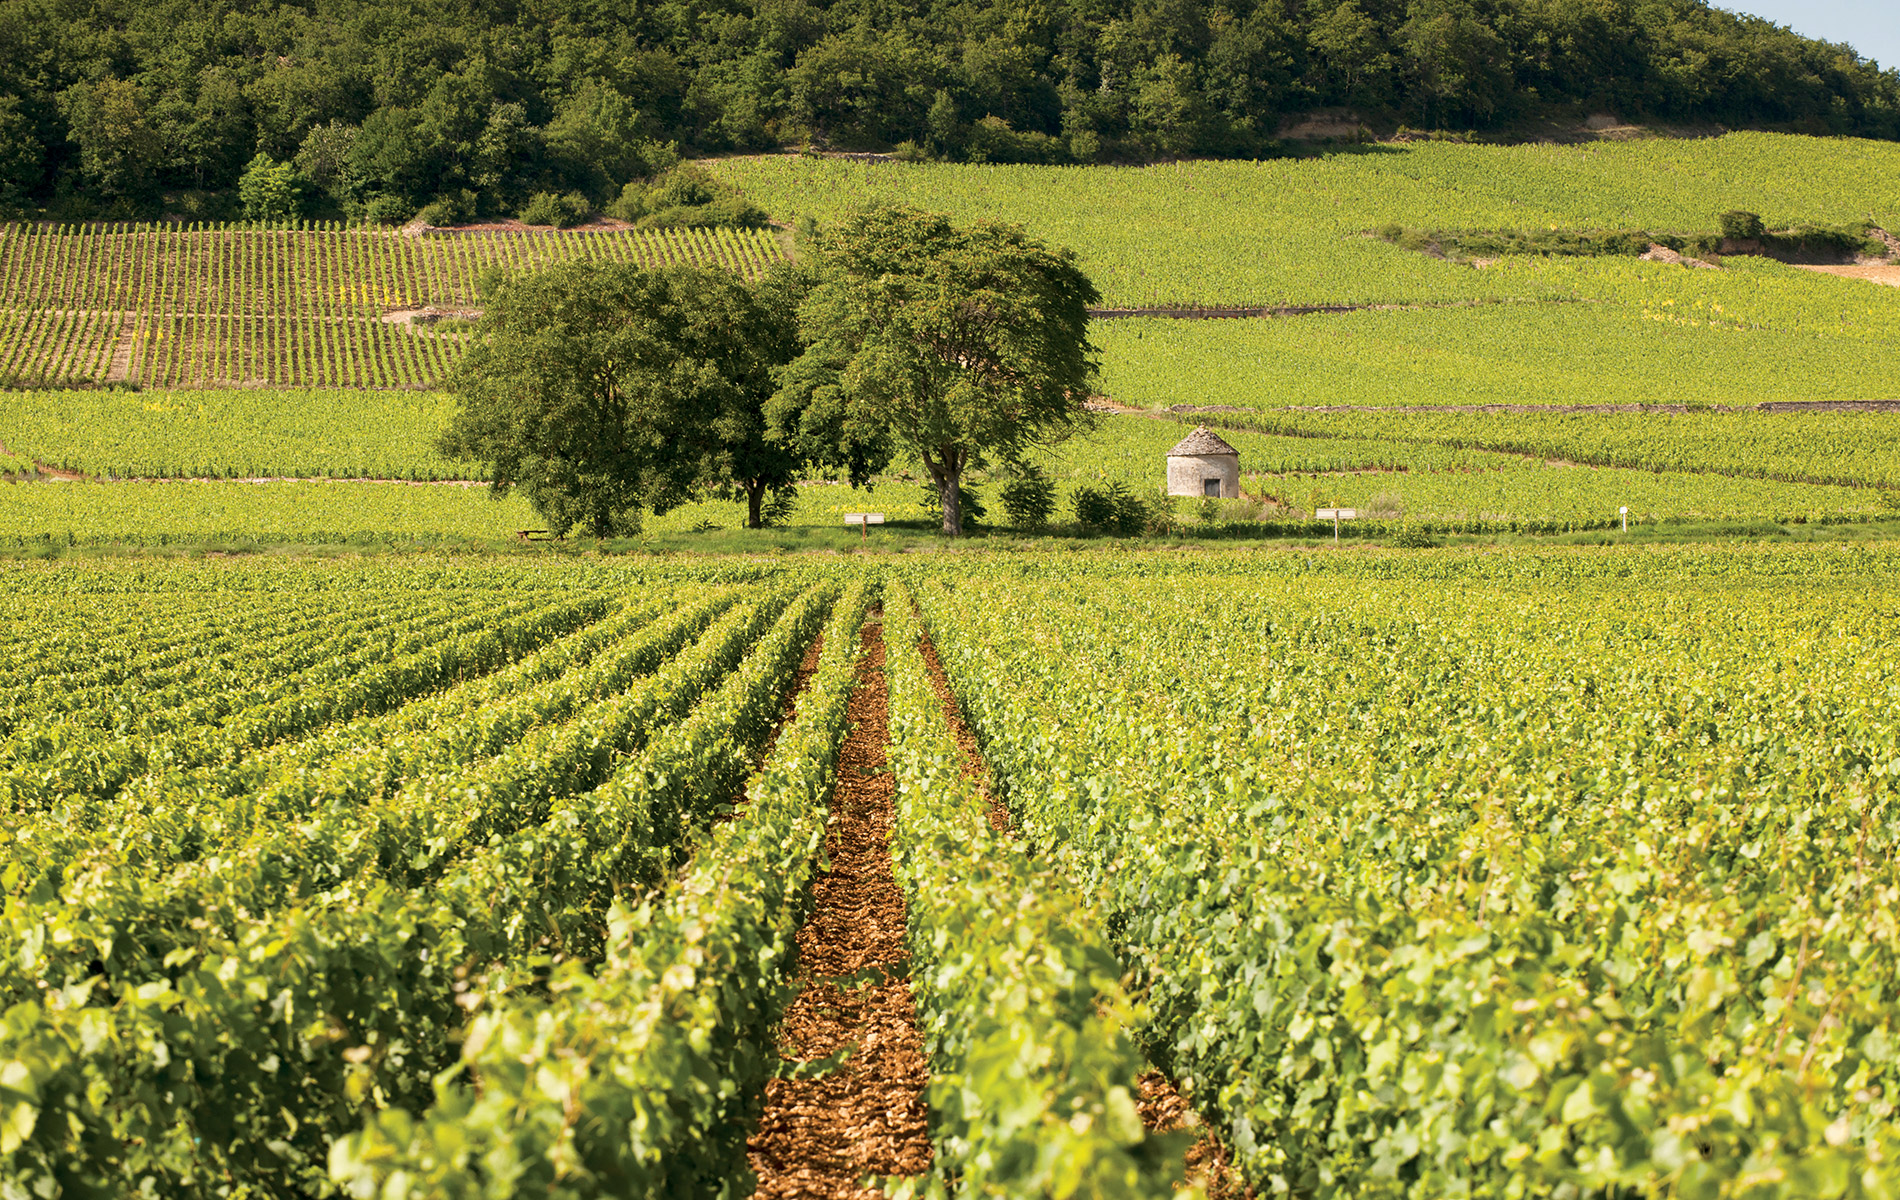 Domaine de Cromey is a picturesque winery and château located in the scenic heart of Burgundy, France.